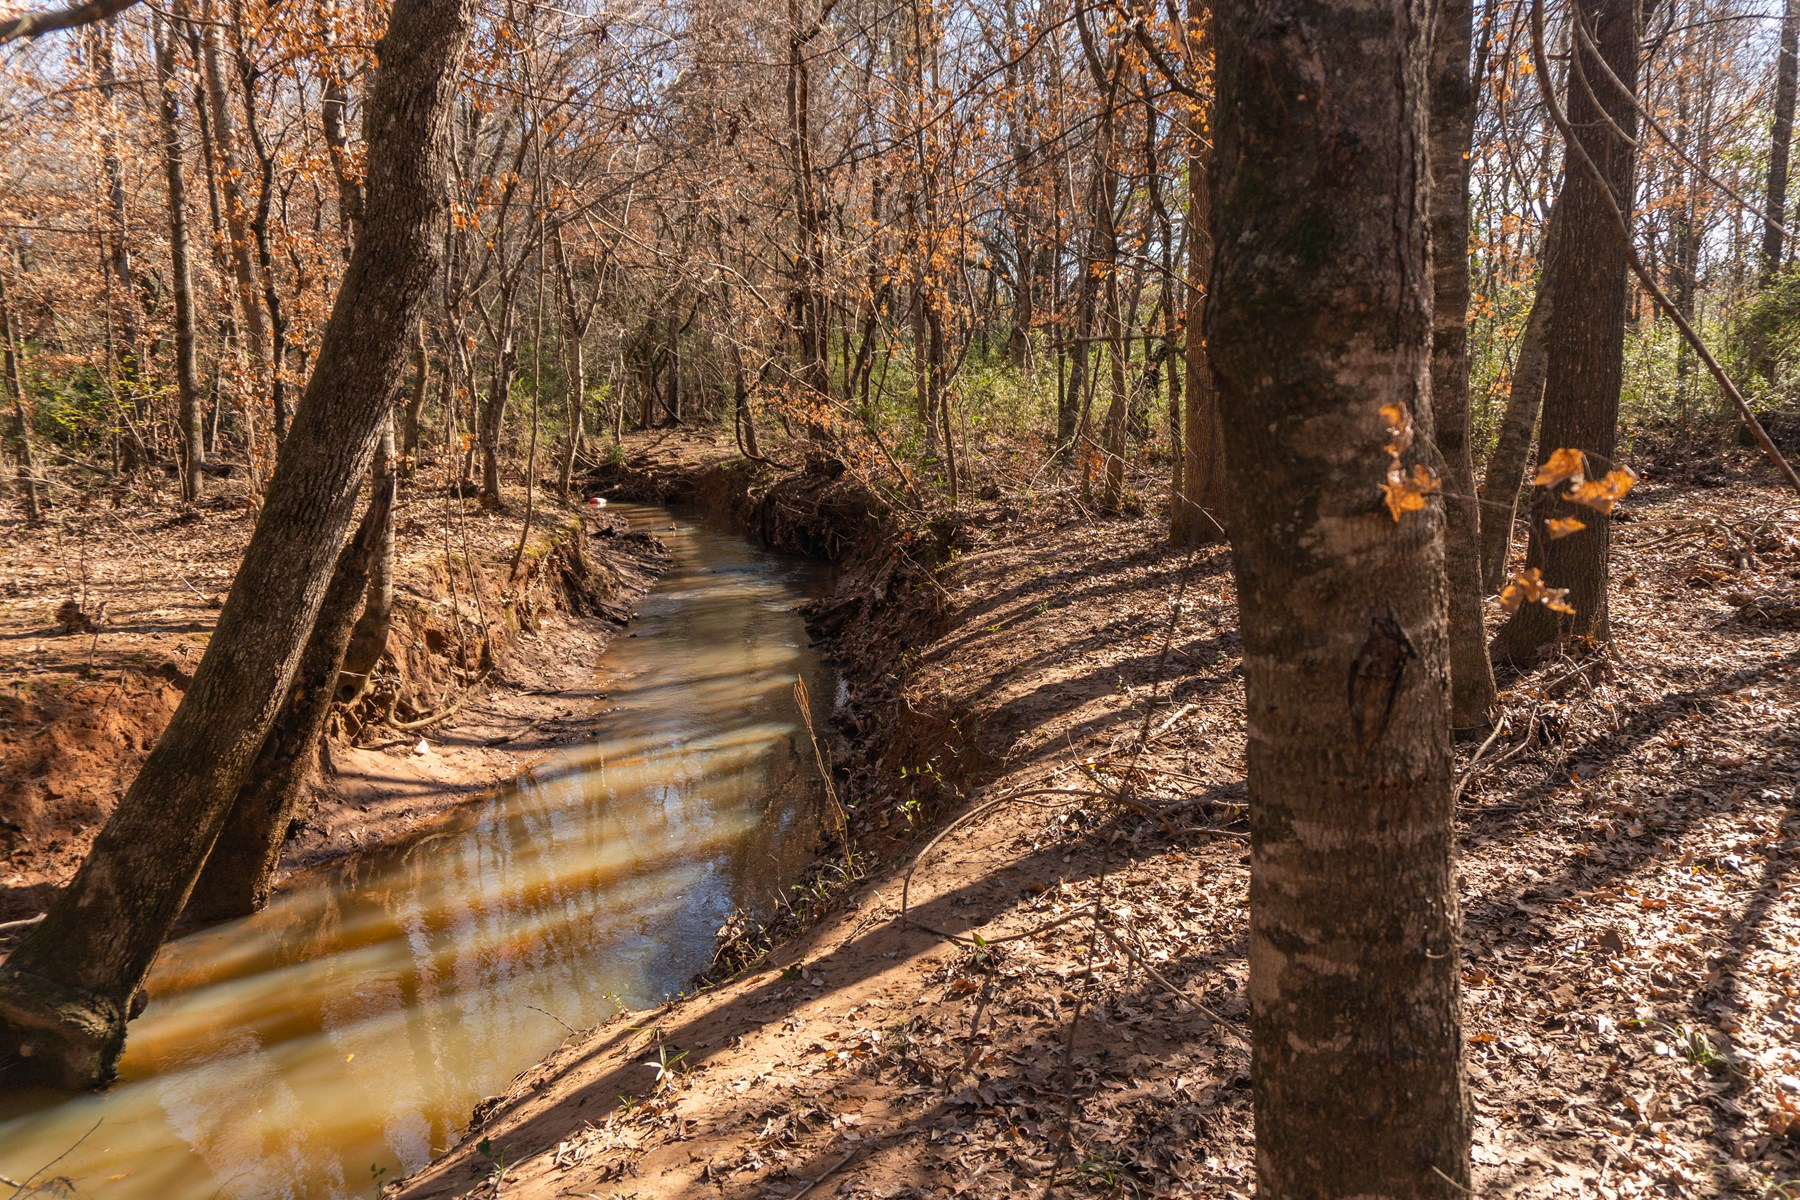 56 ACRES IN RUSK CO | CR FRONTAGE, NICE HILL, THICK FOREST